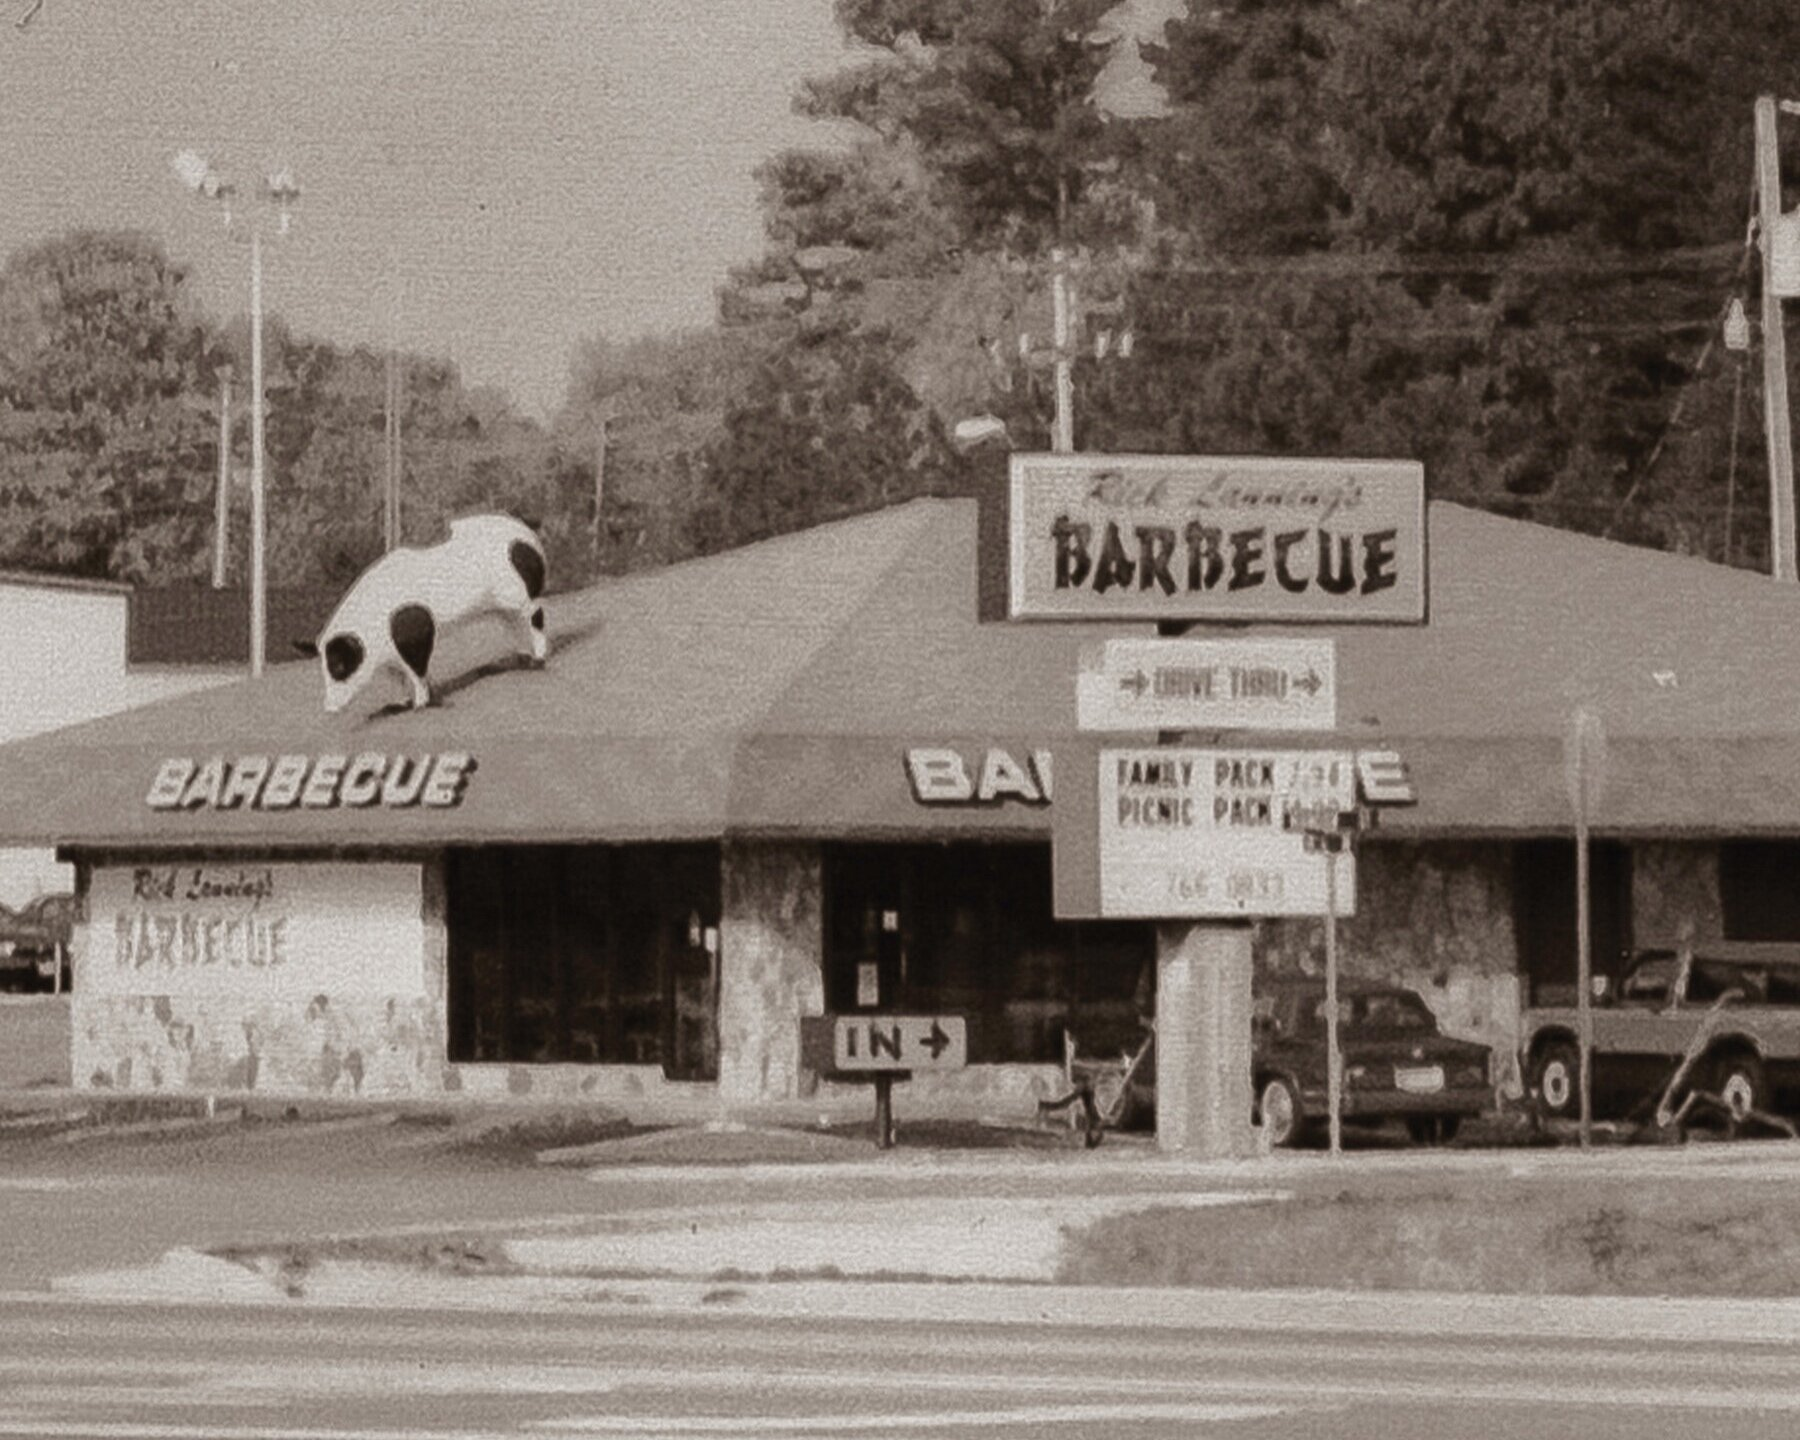 1991 - IN 1991, OUR 2ND AL LOCATION OPENED AT 240 COX CREEK PARKWAY, FLORENCE, AL 35630. THIS LOCATION WAS USED FOR 20 YEARS BEFORE RELOCATING.